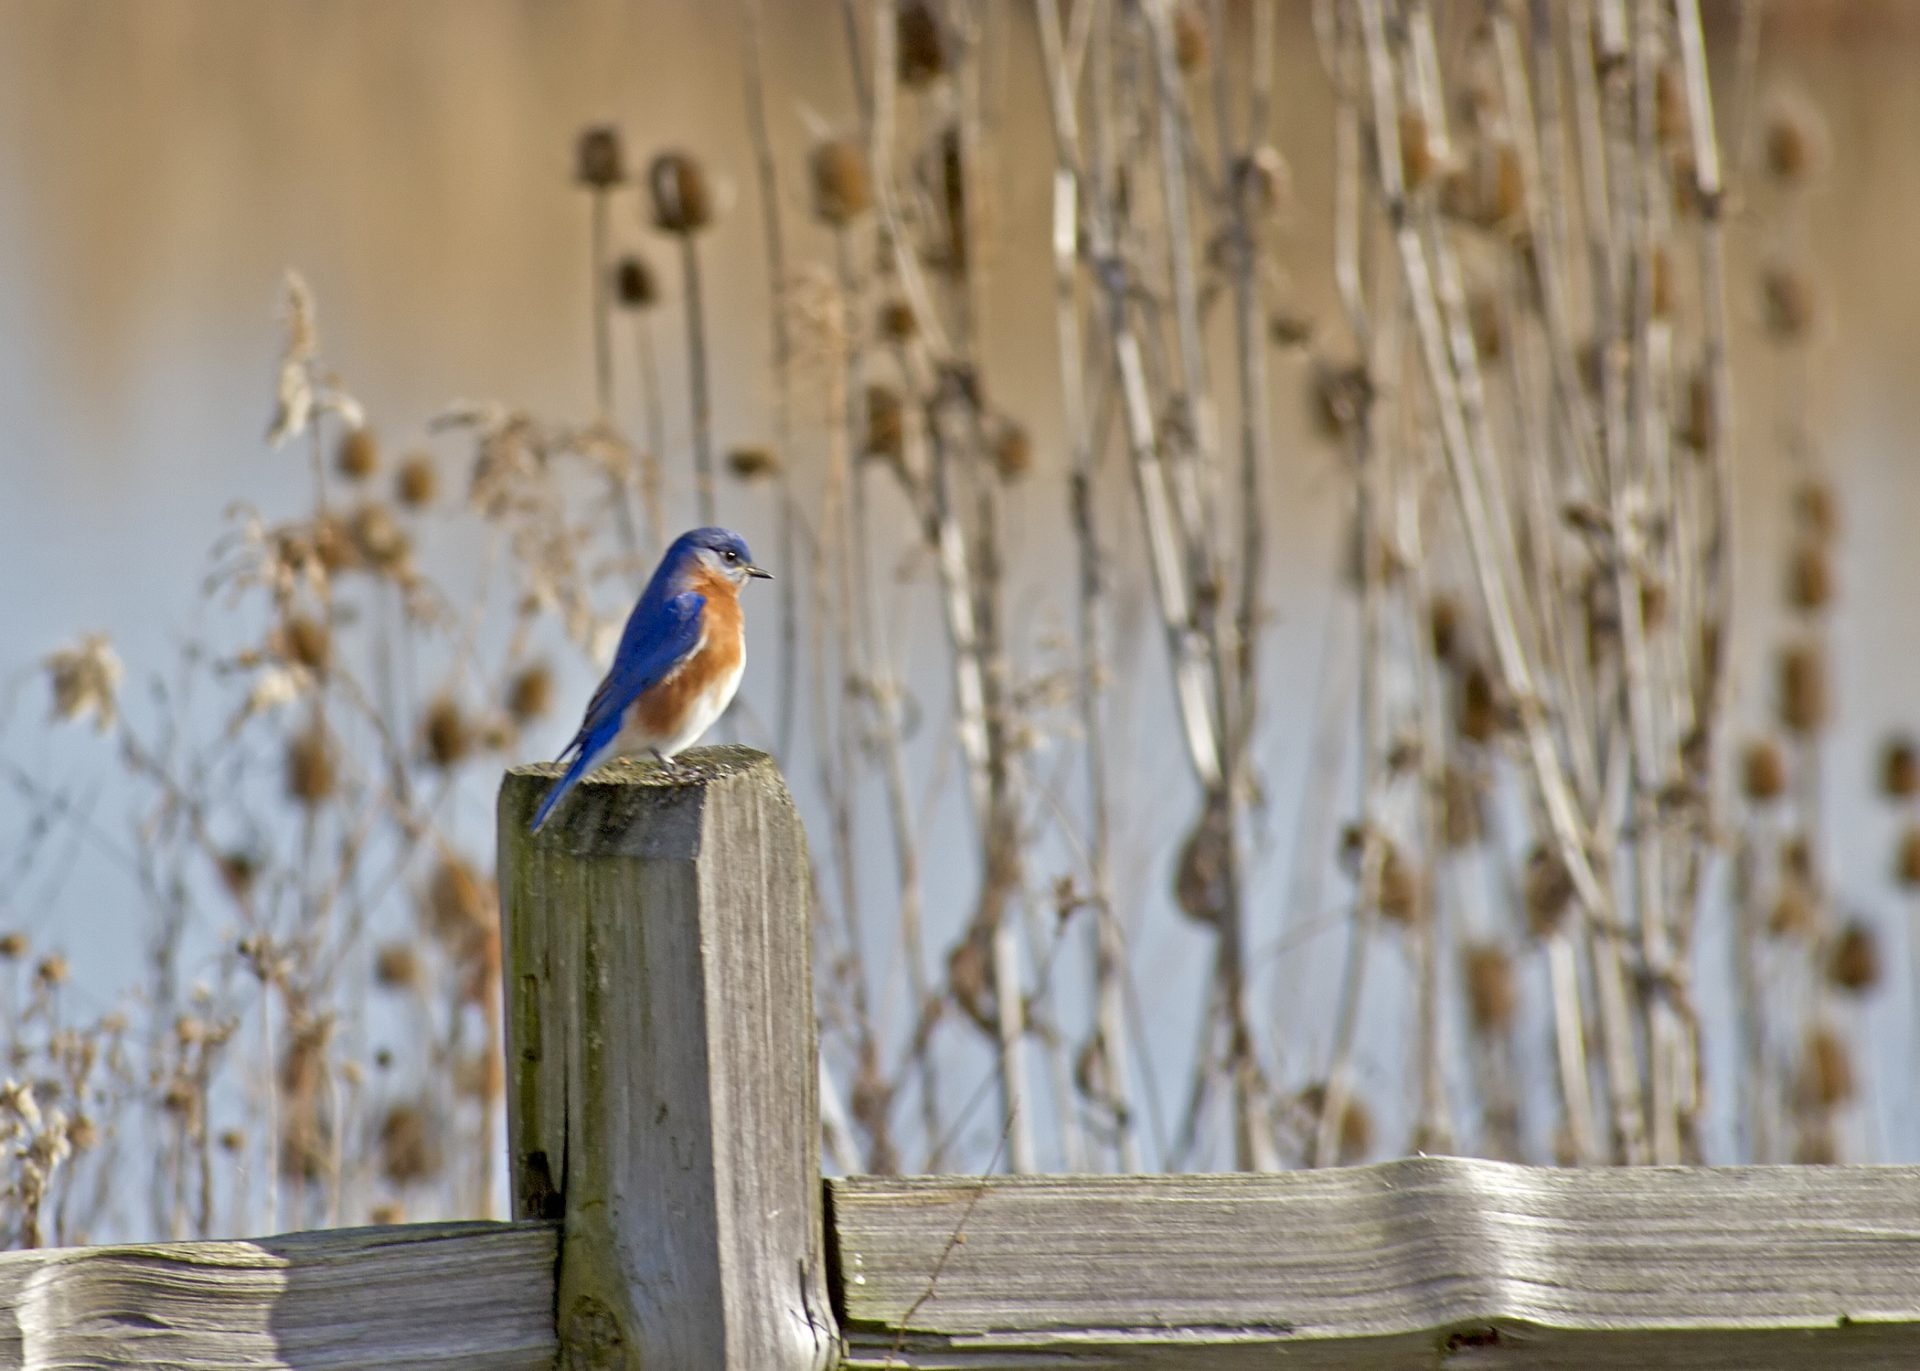 Eastern Bluebird. Photo by Jerry Dalrymple